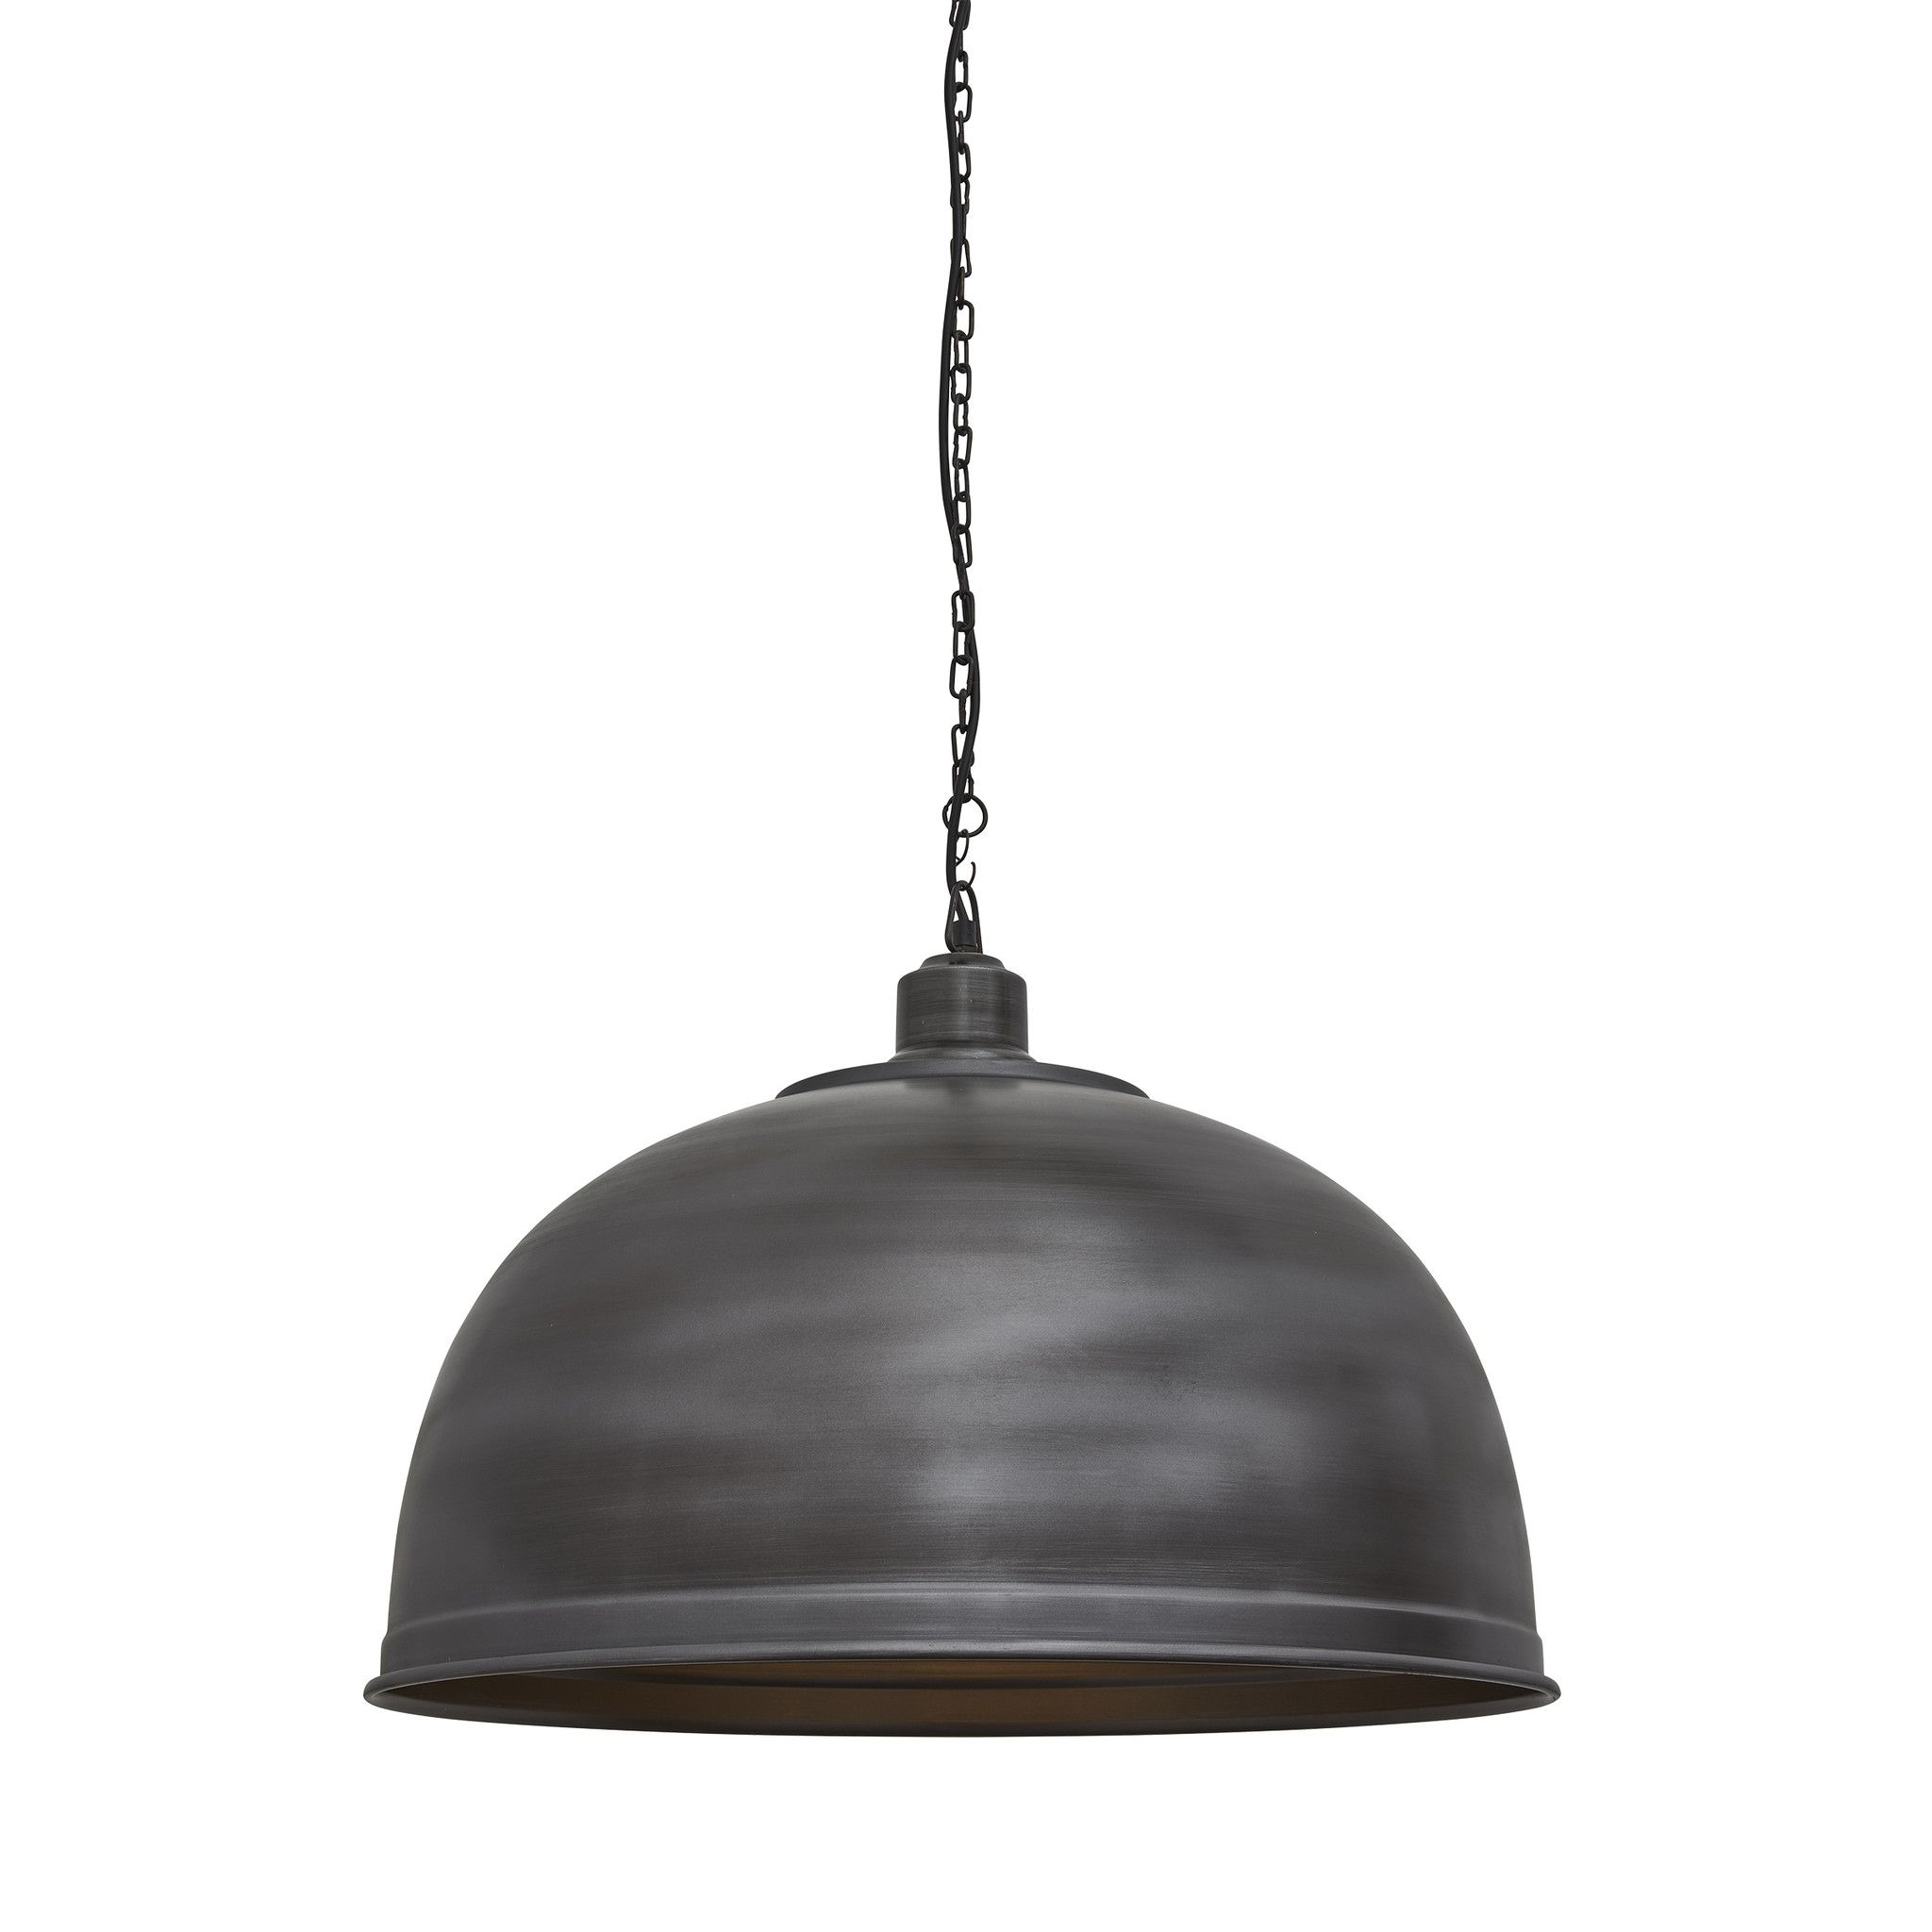 Brooklyn Giant Dome Pendant 23 5 Inch Pewter